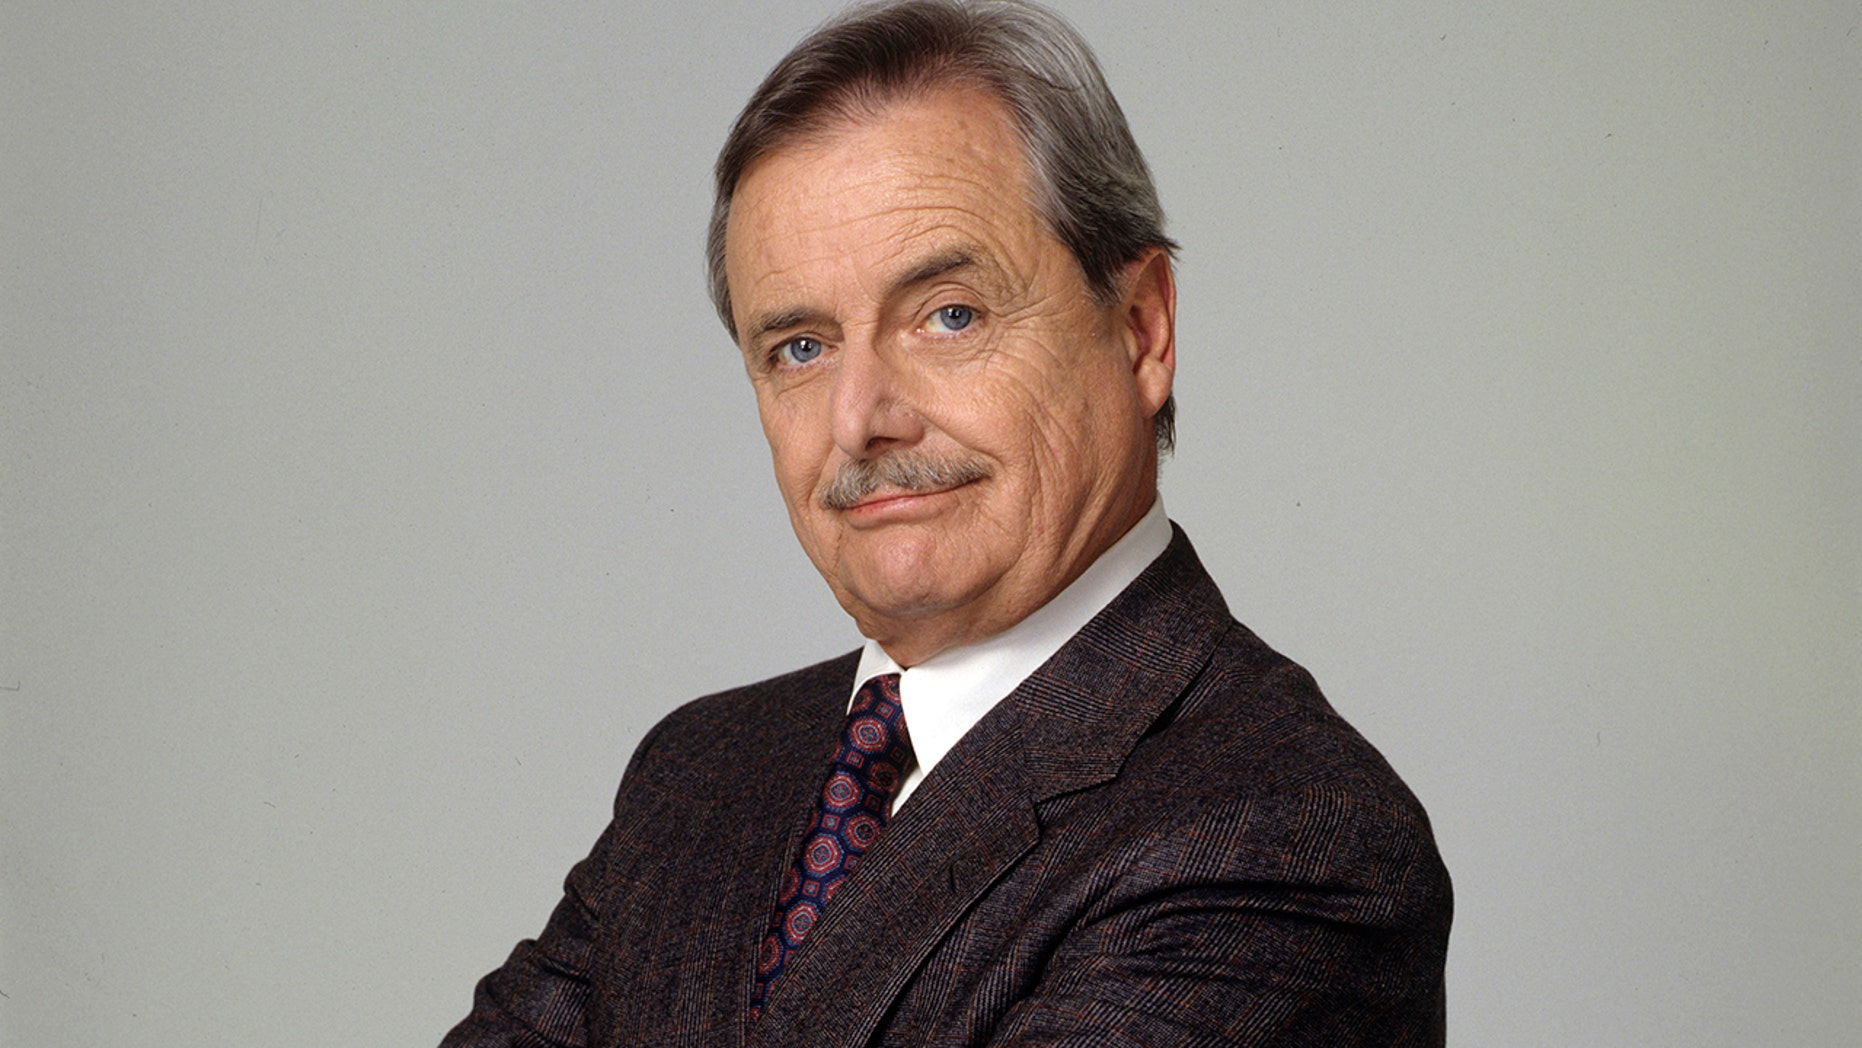 Actor William Daniels foiled an attempted burglary at his home on Saturday.